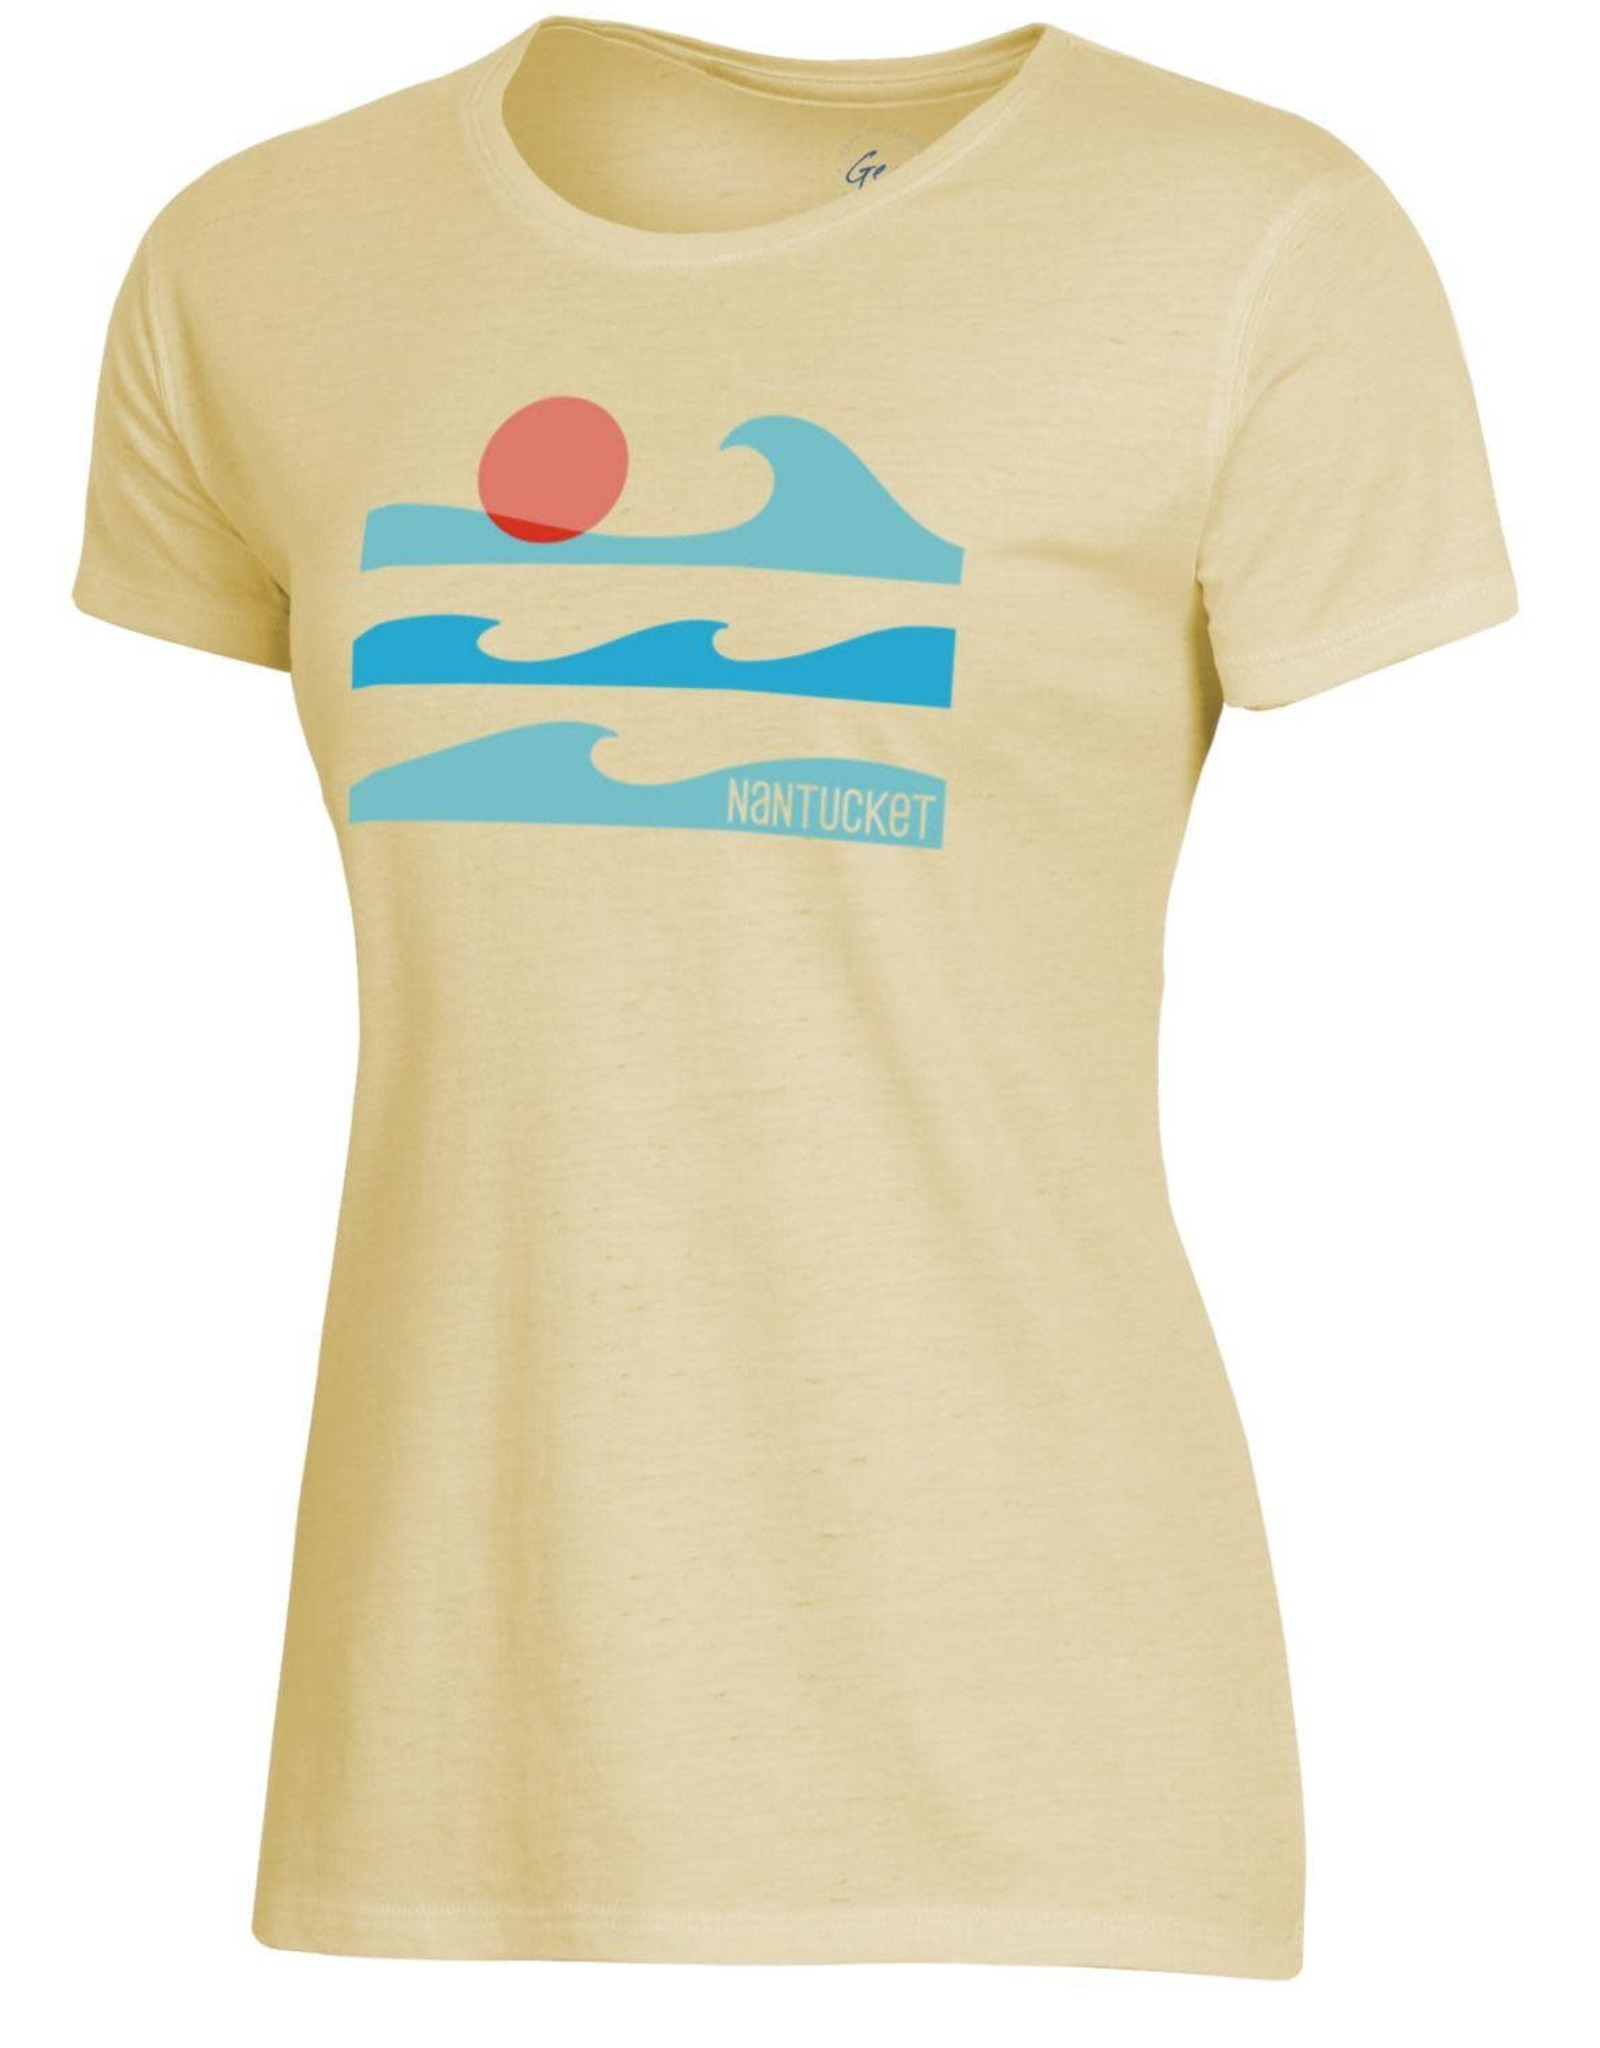 Gear Gear Ladies Tee Sun & Waves